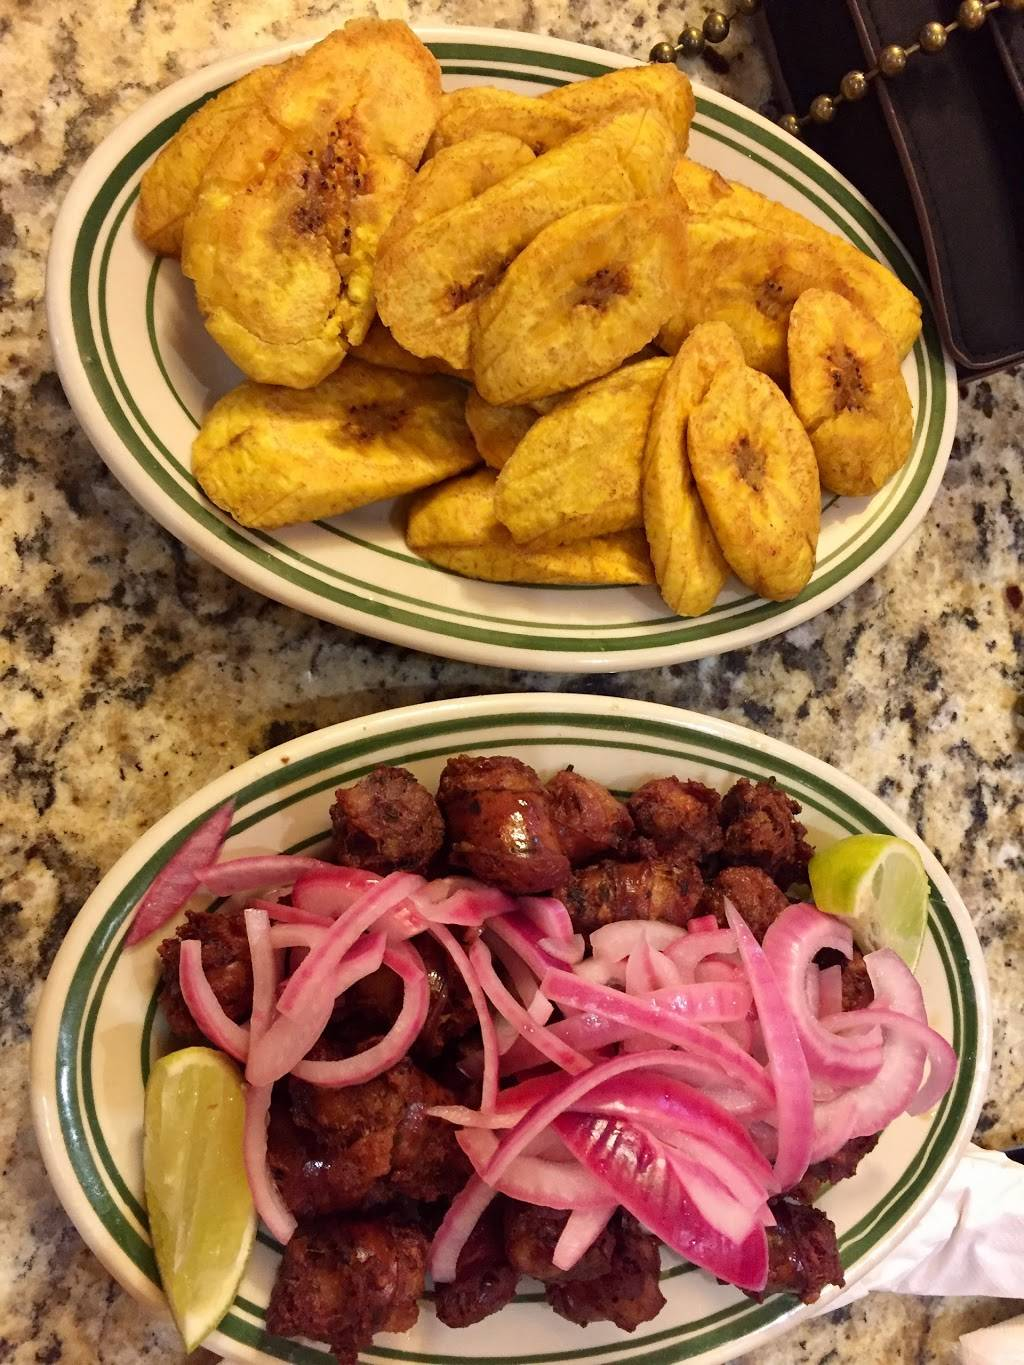 El Valle | restaurant | 1008 Westchester Ave, Bronx, NY 10459, USA | 7188608300 OR +1 718-860-8300